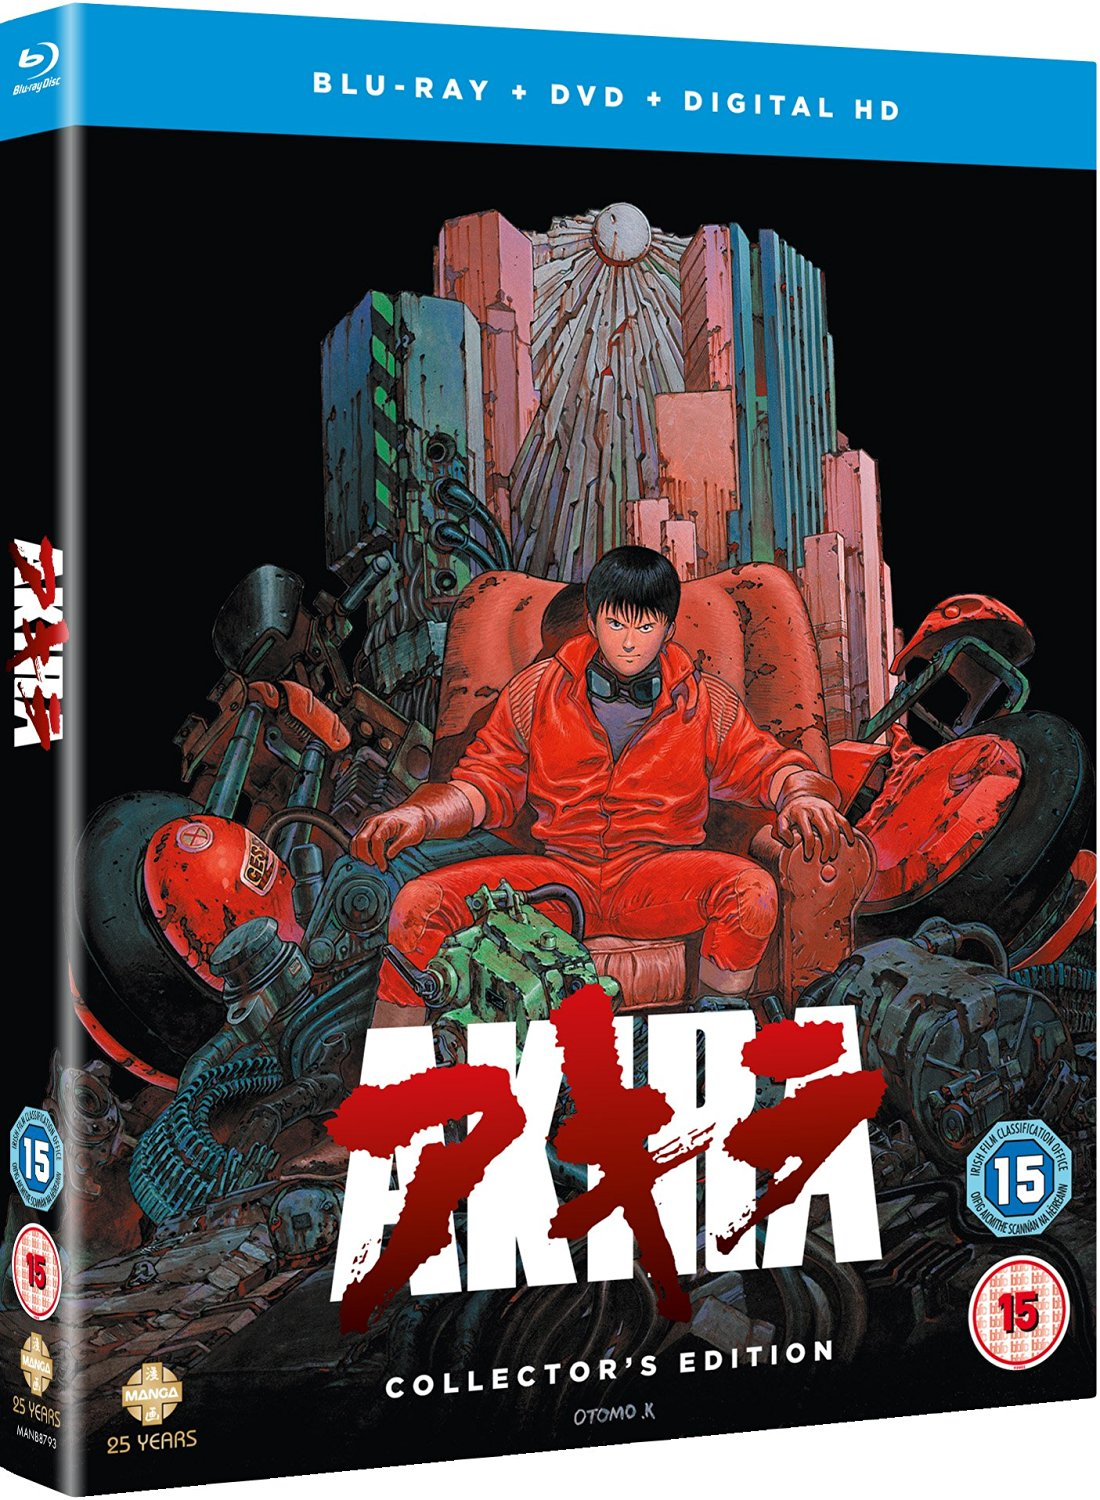 Anime Classic Akira Is Getting A New Collectors Edition